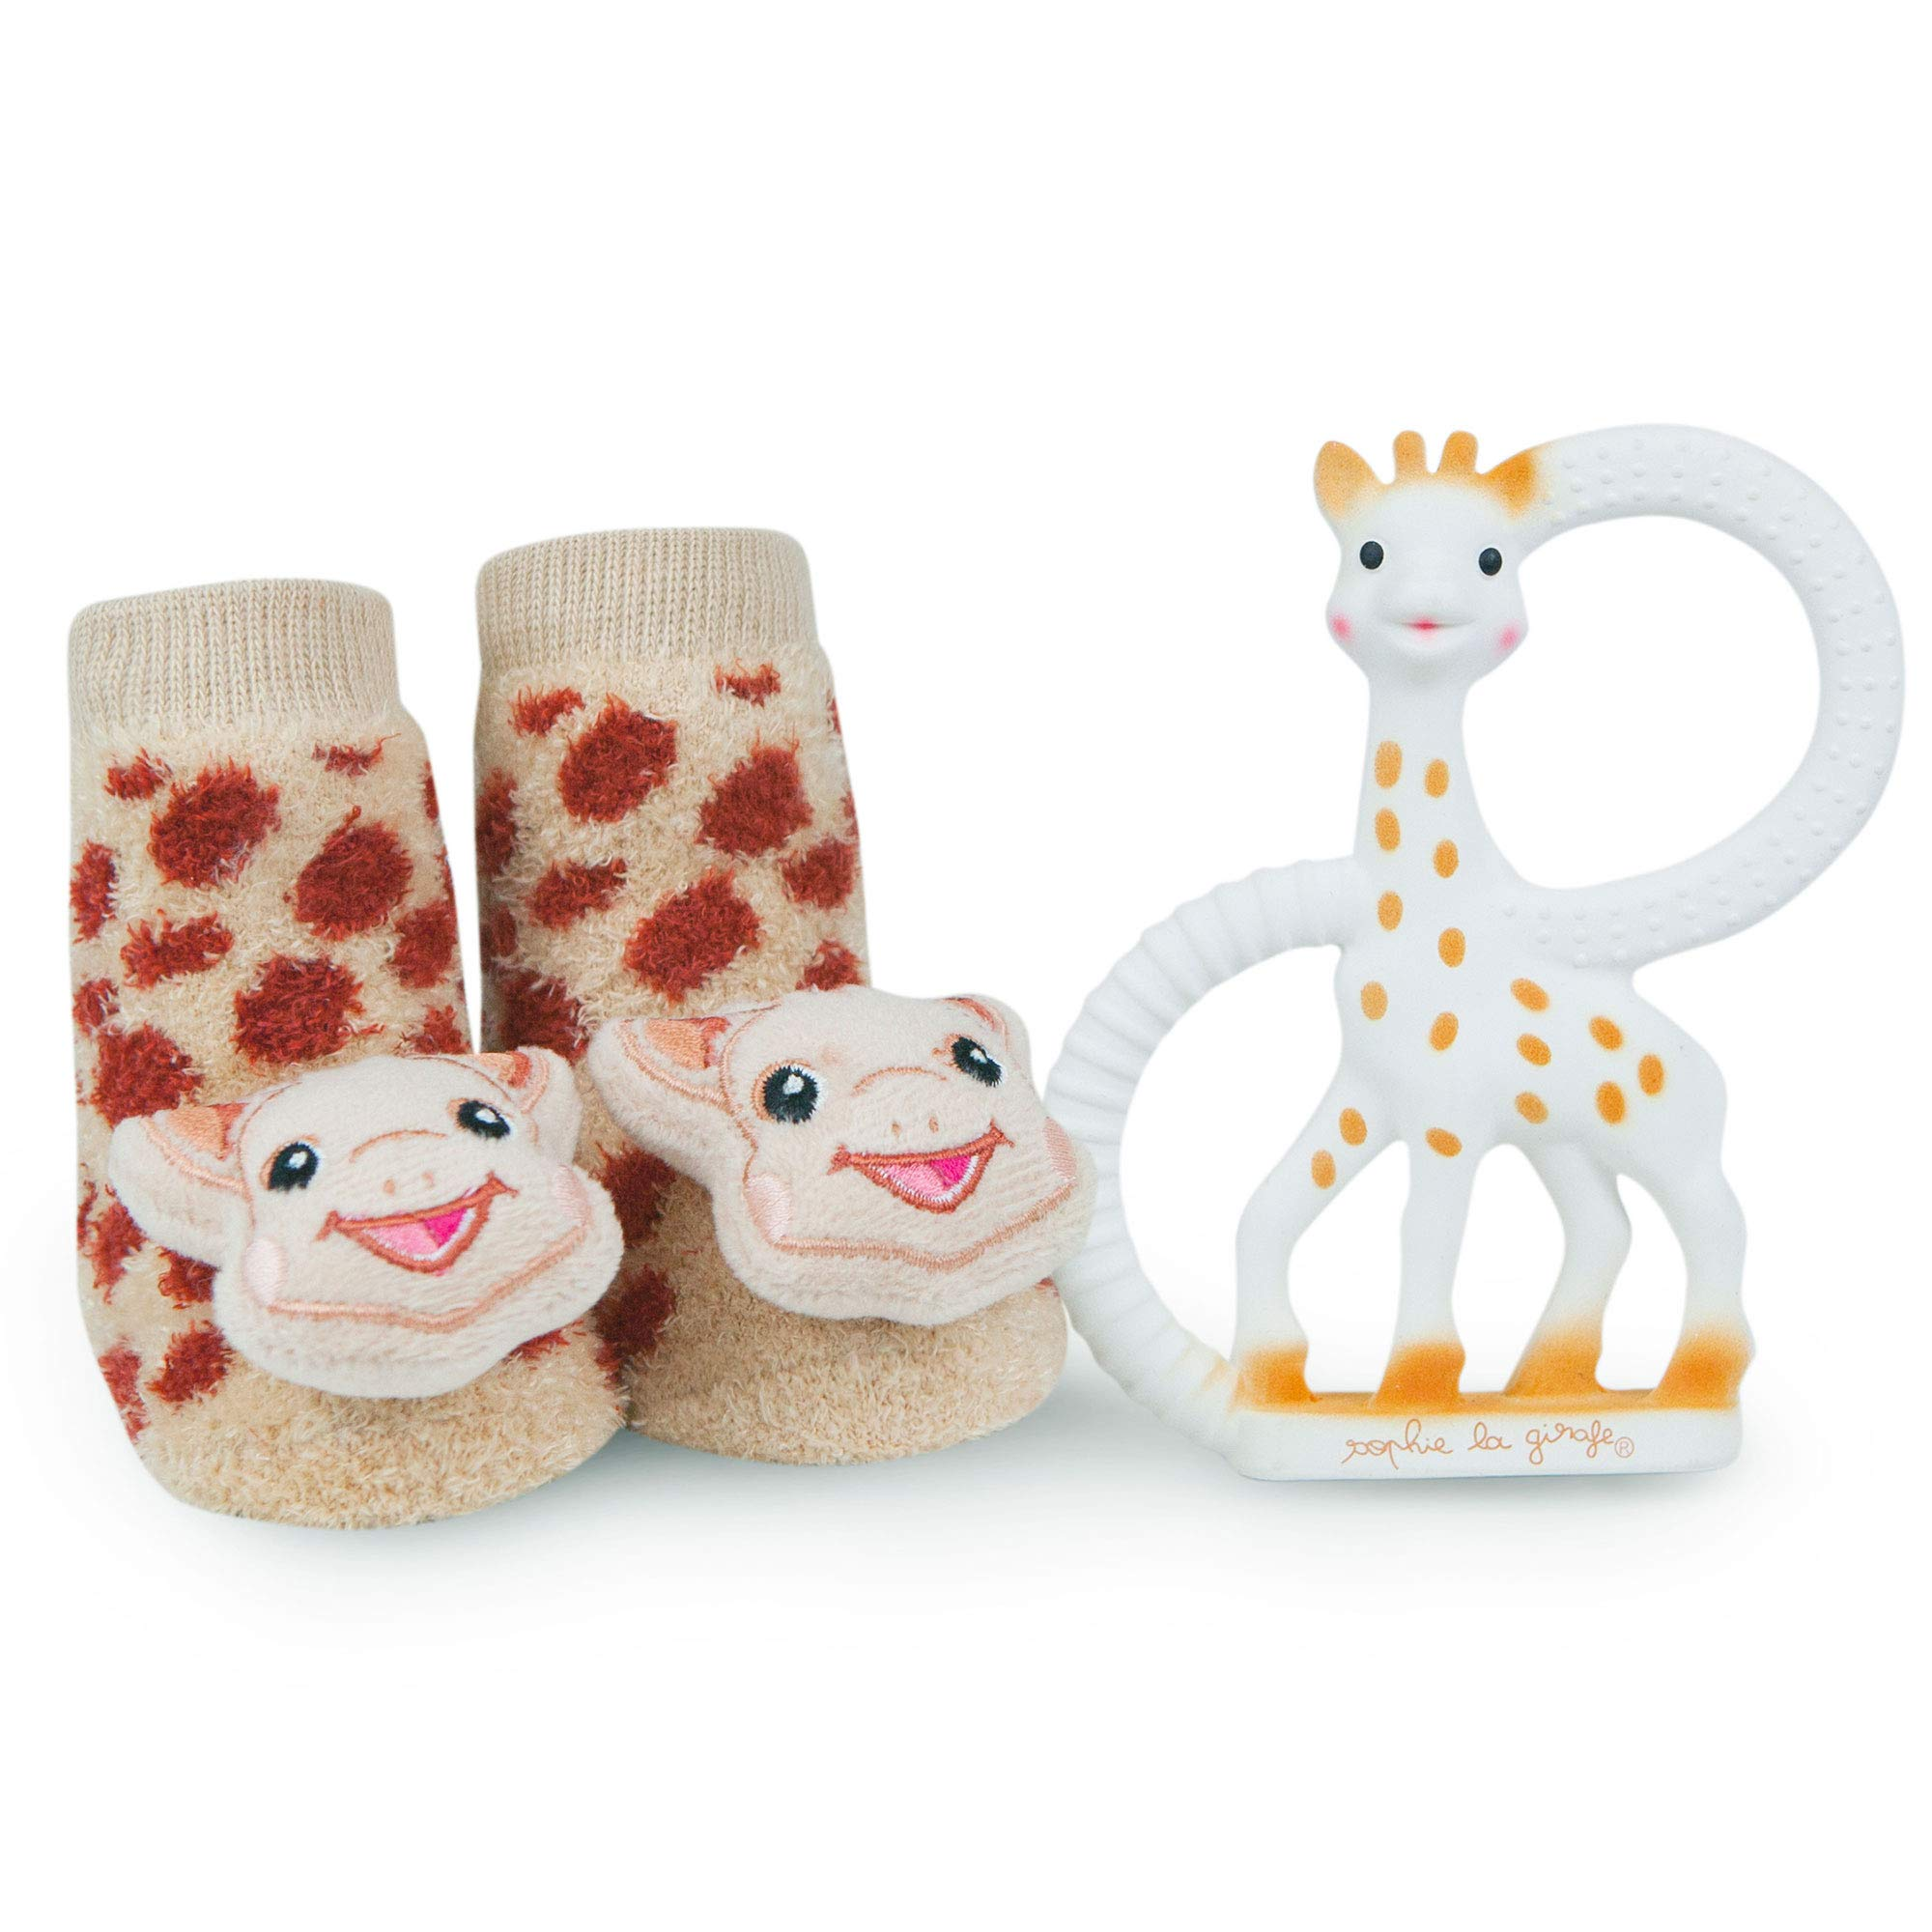 Vulli Sophie La Girafe Baby Teether Toy and Waddle Sophie The Giraffe Rattle Socks Newborn Set Natural Rubber Teething Ring Unisex Animal Sensory Chew Toys Gum Massager Oral Pain Relief Soother